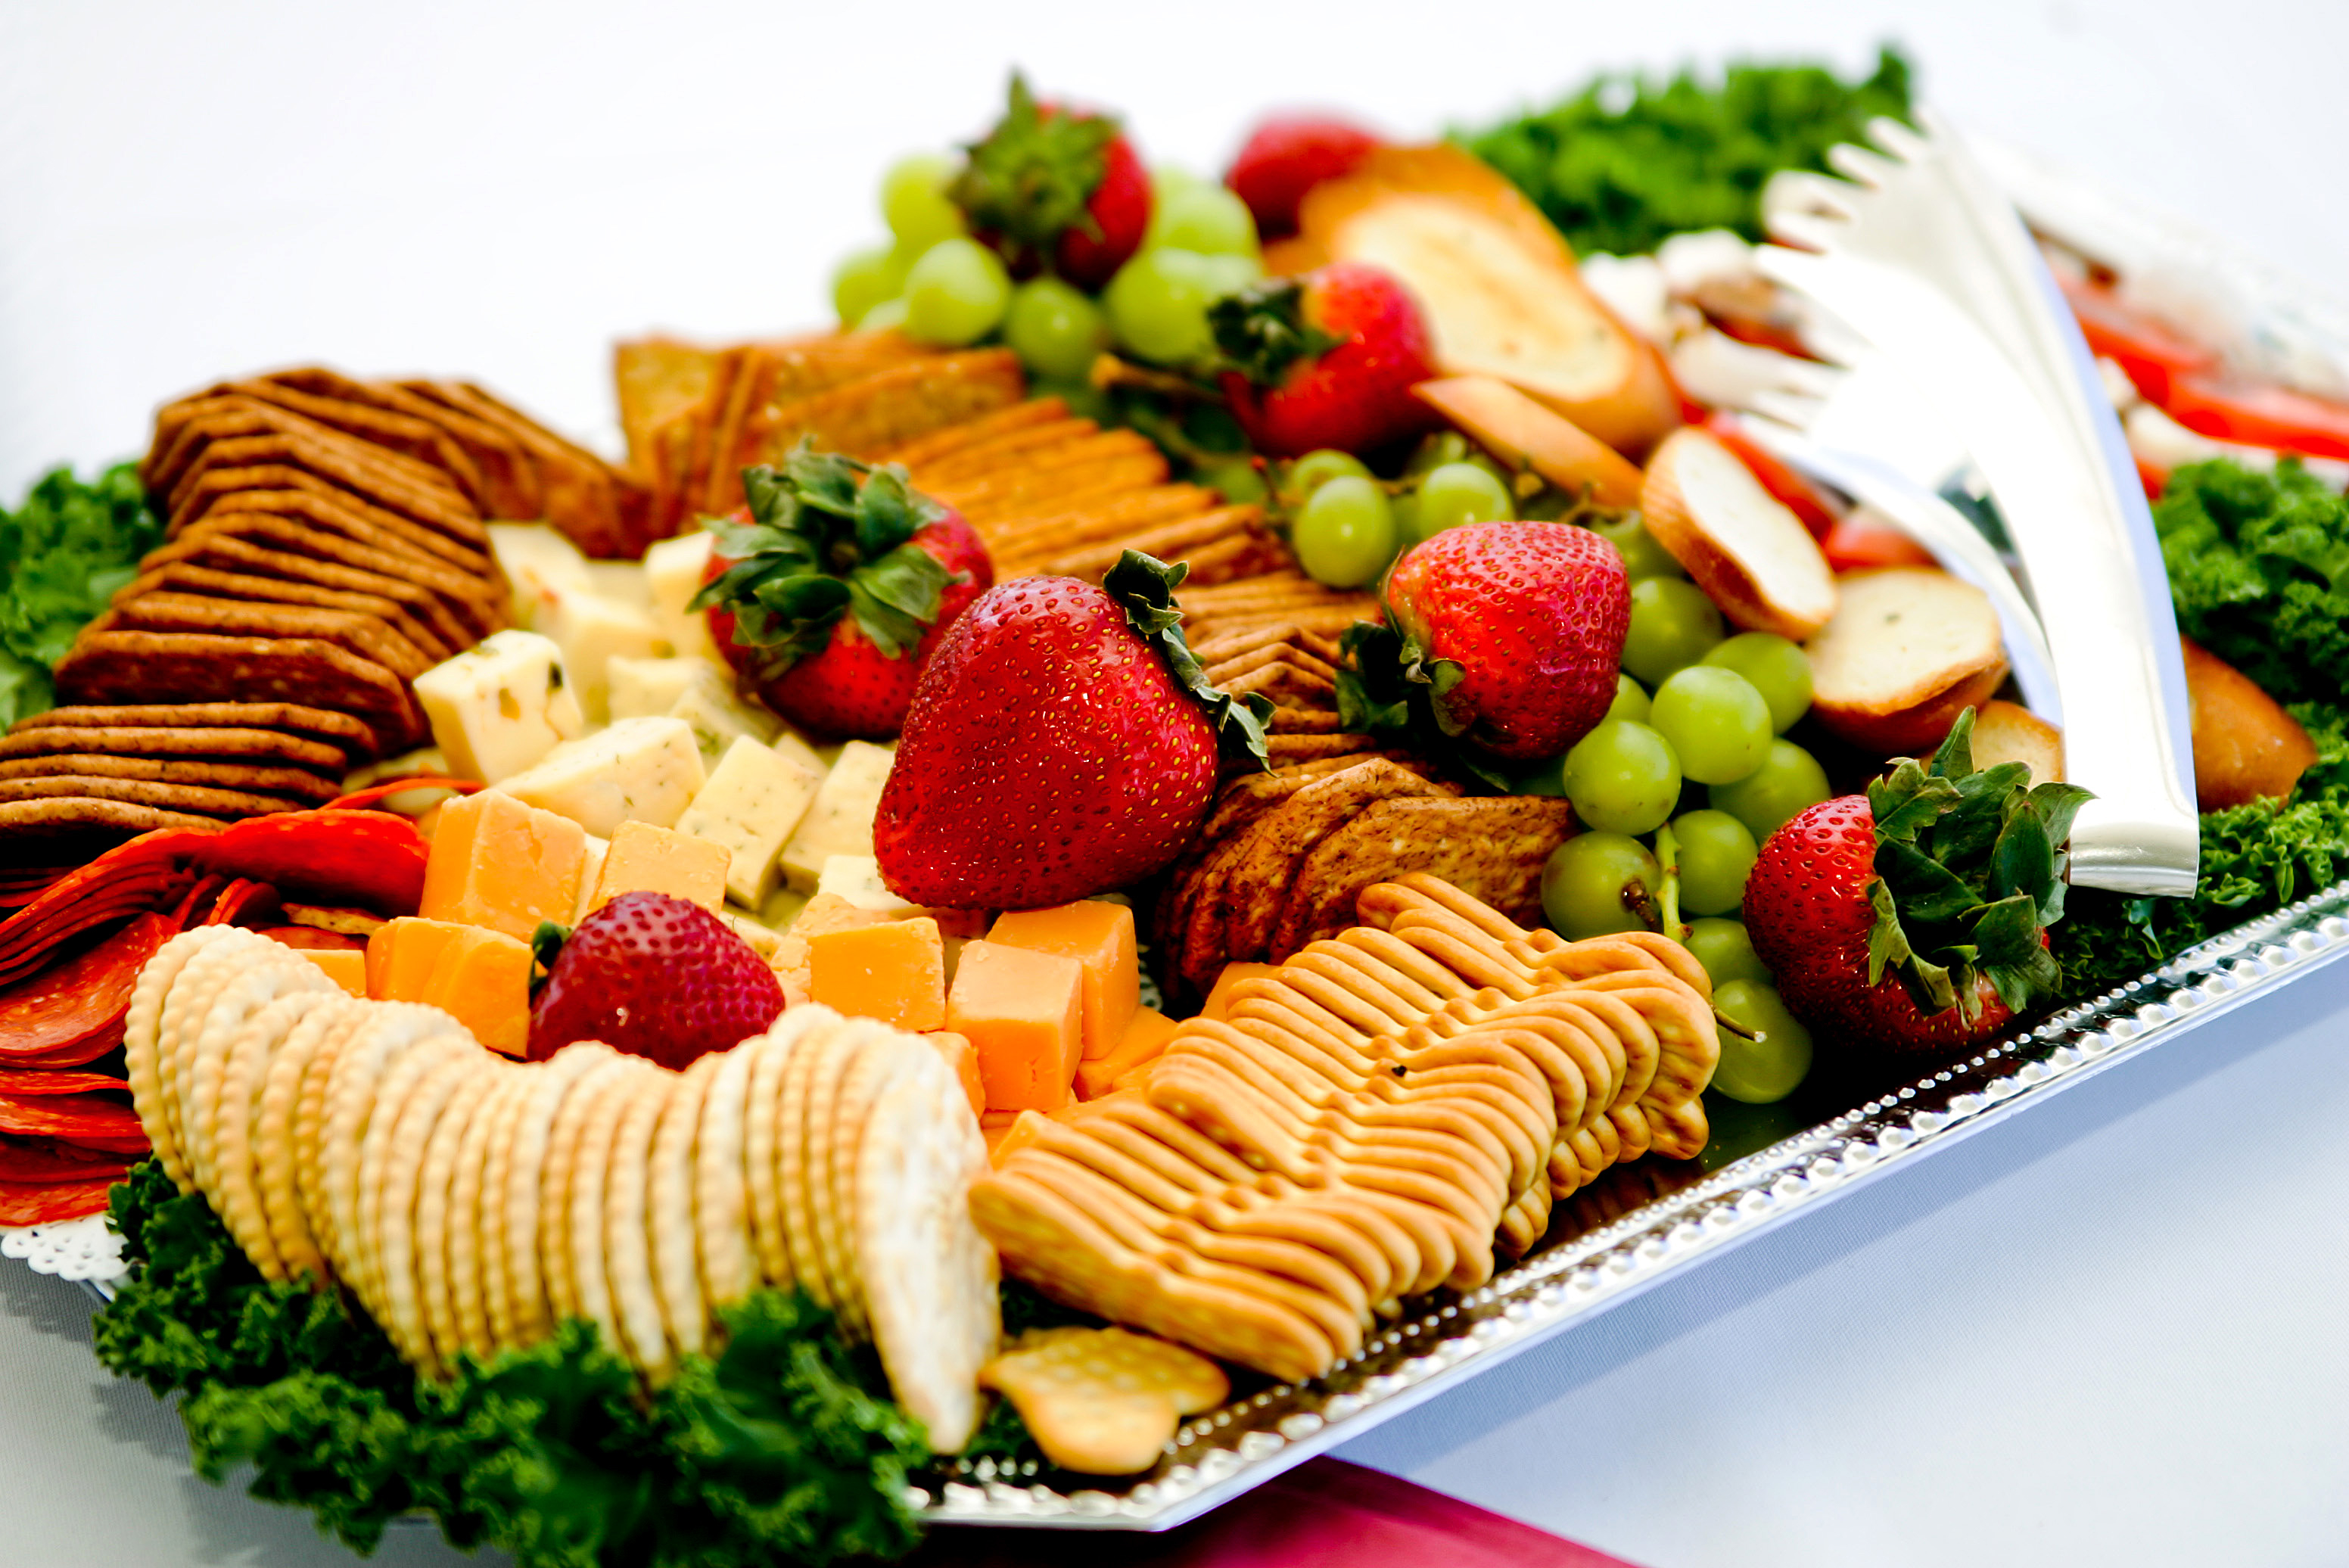 Cheese Cracker Platter Corporate Catering Photos